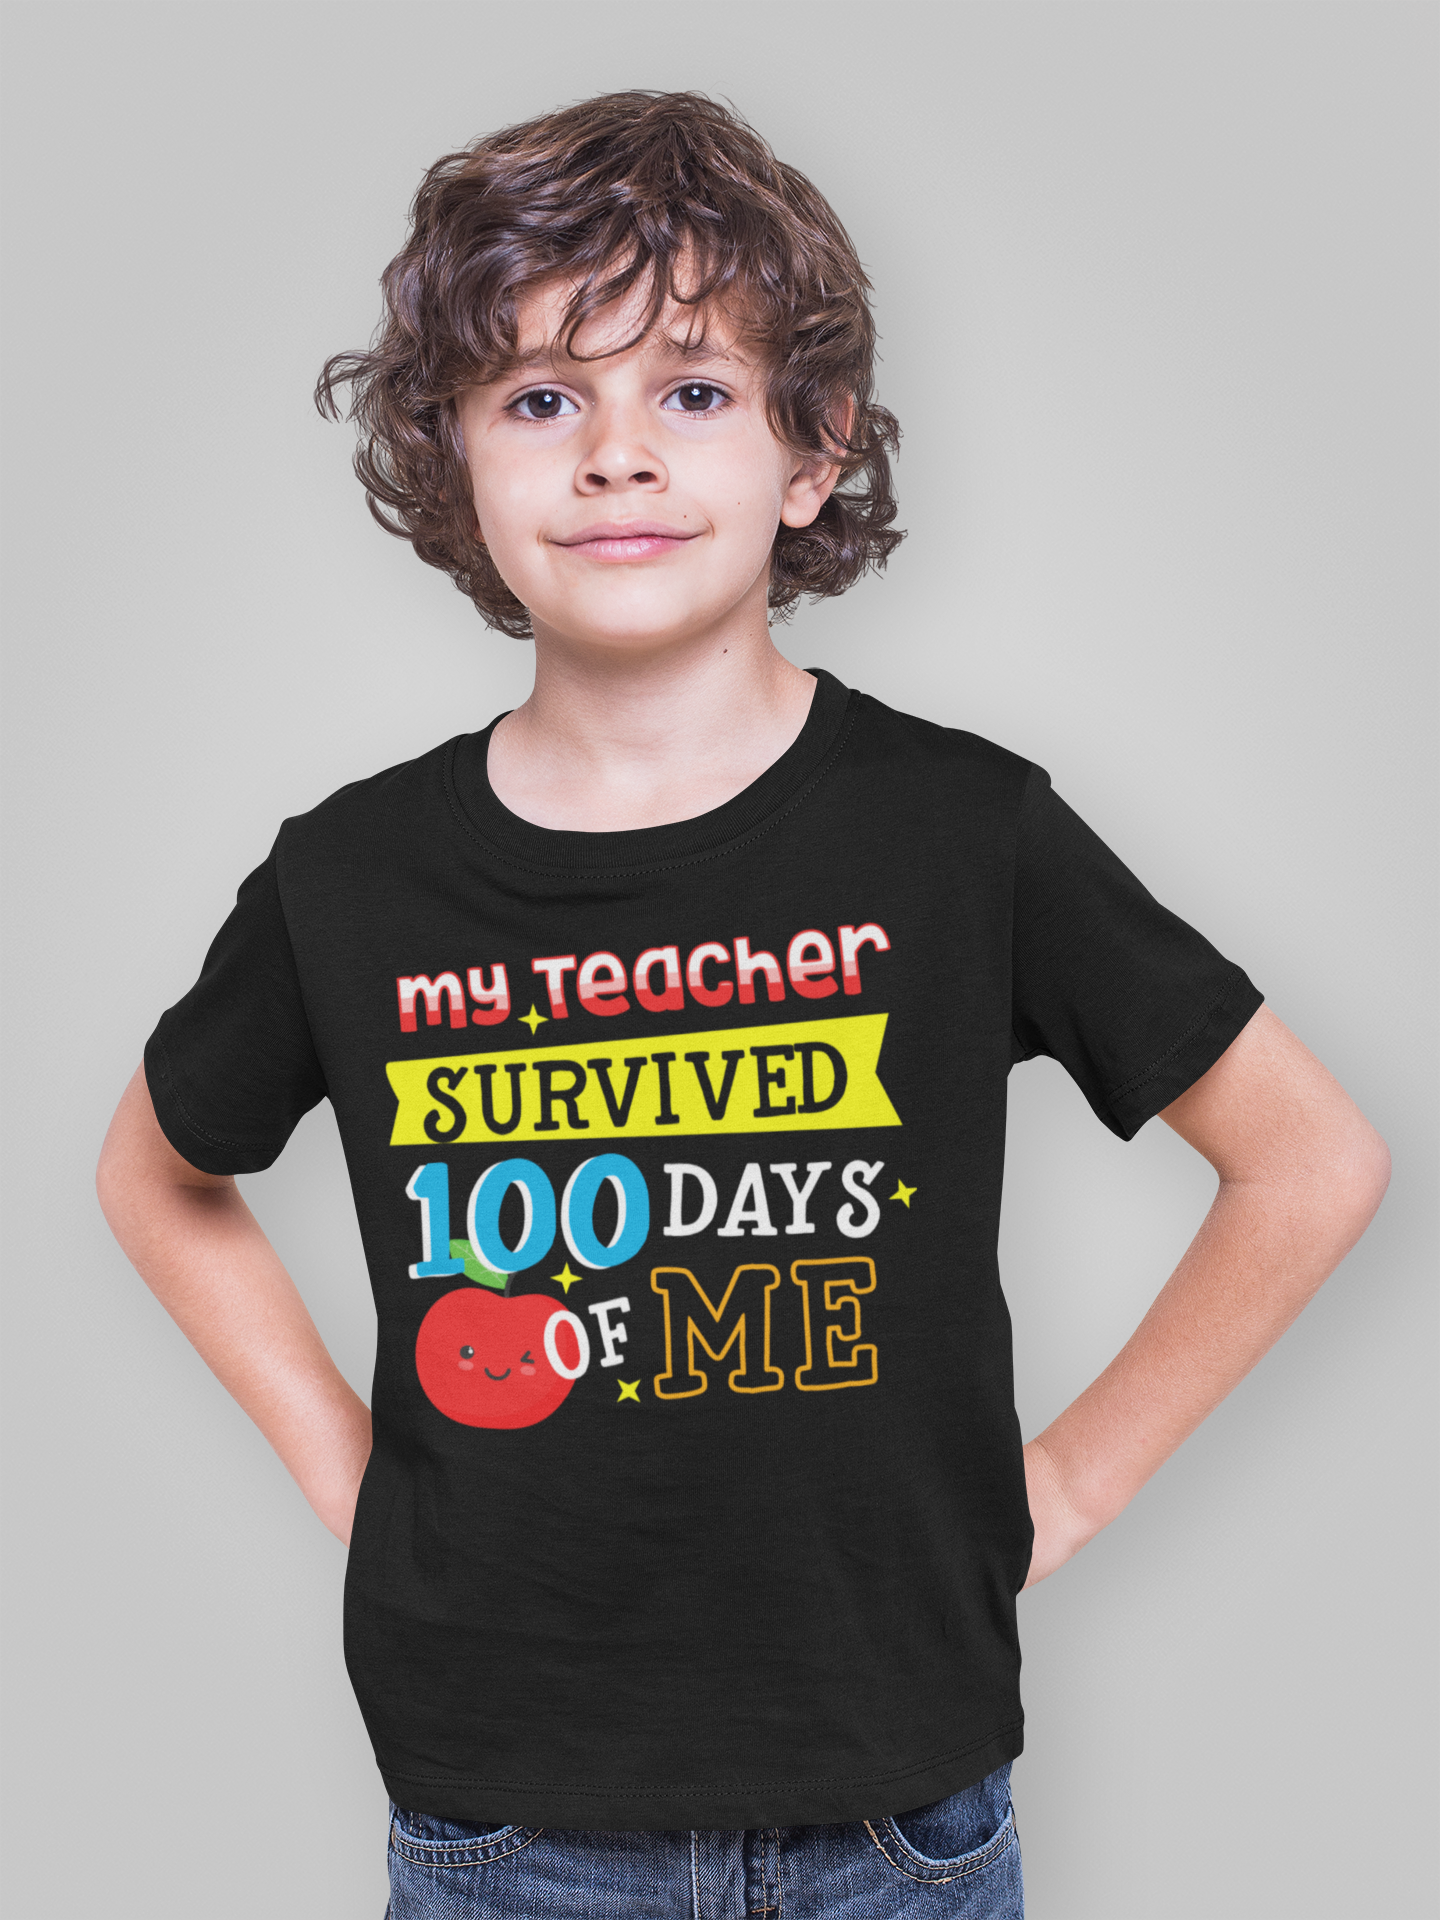 Best Ideas For Halloween Tshirts For Your Kids 2020 100th Day Of School Shirt for Boys in 2020 | Dad and son shirts